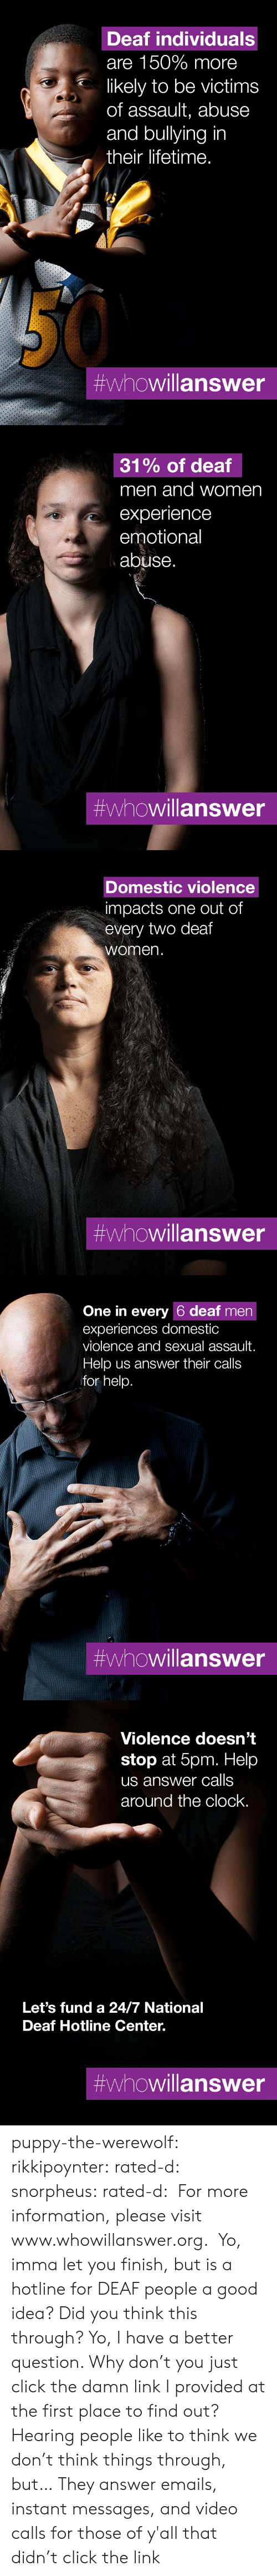 Experiences: Deaf individuals  are 150% more  likely to be victims  of assault, abuse  and bullying in  their lifetime.  #whowillanswer   31% of deaf  men and women  experience  emotional  abuse.  #whowillanswer   Domestic violence  impacts one out of  every two deaf  women.  #whowillanswer   One in every 6 deaf men  experiences domestic  violence and sexual assault.  Help us answer their calls  for help.  #whowillanswer   Violence doesn't  stop at 5pm. Help  us answer calls  around the clock.  Let's fund a 24/7 National  Deaf Hotline Center.  puppy-the-werewolf: rikkipoynter:  rated-d:  snorpheus:  rated-d:   For more information, please visit www.whowillanswer.org.   Yo, imma let you finish, but is a hotline for DEAF people a good idea? Did you think this through?  Yo, I have a better question. Why don't you just click the damn link I provided at the first place to find out?     Hearing people like to think we don't think things through, but…   They answer emails, instant messages, and video calls for those of y'all that didn't click the link